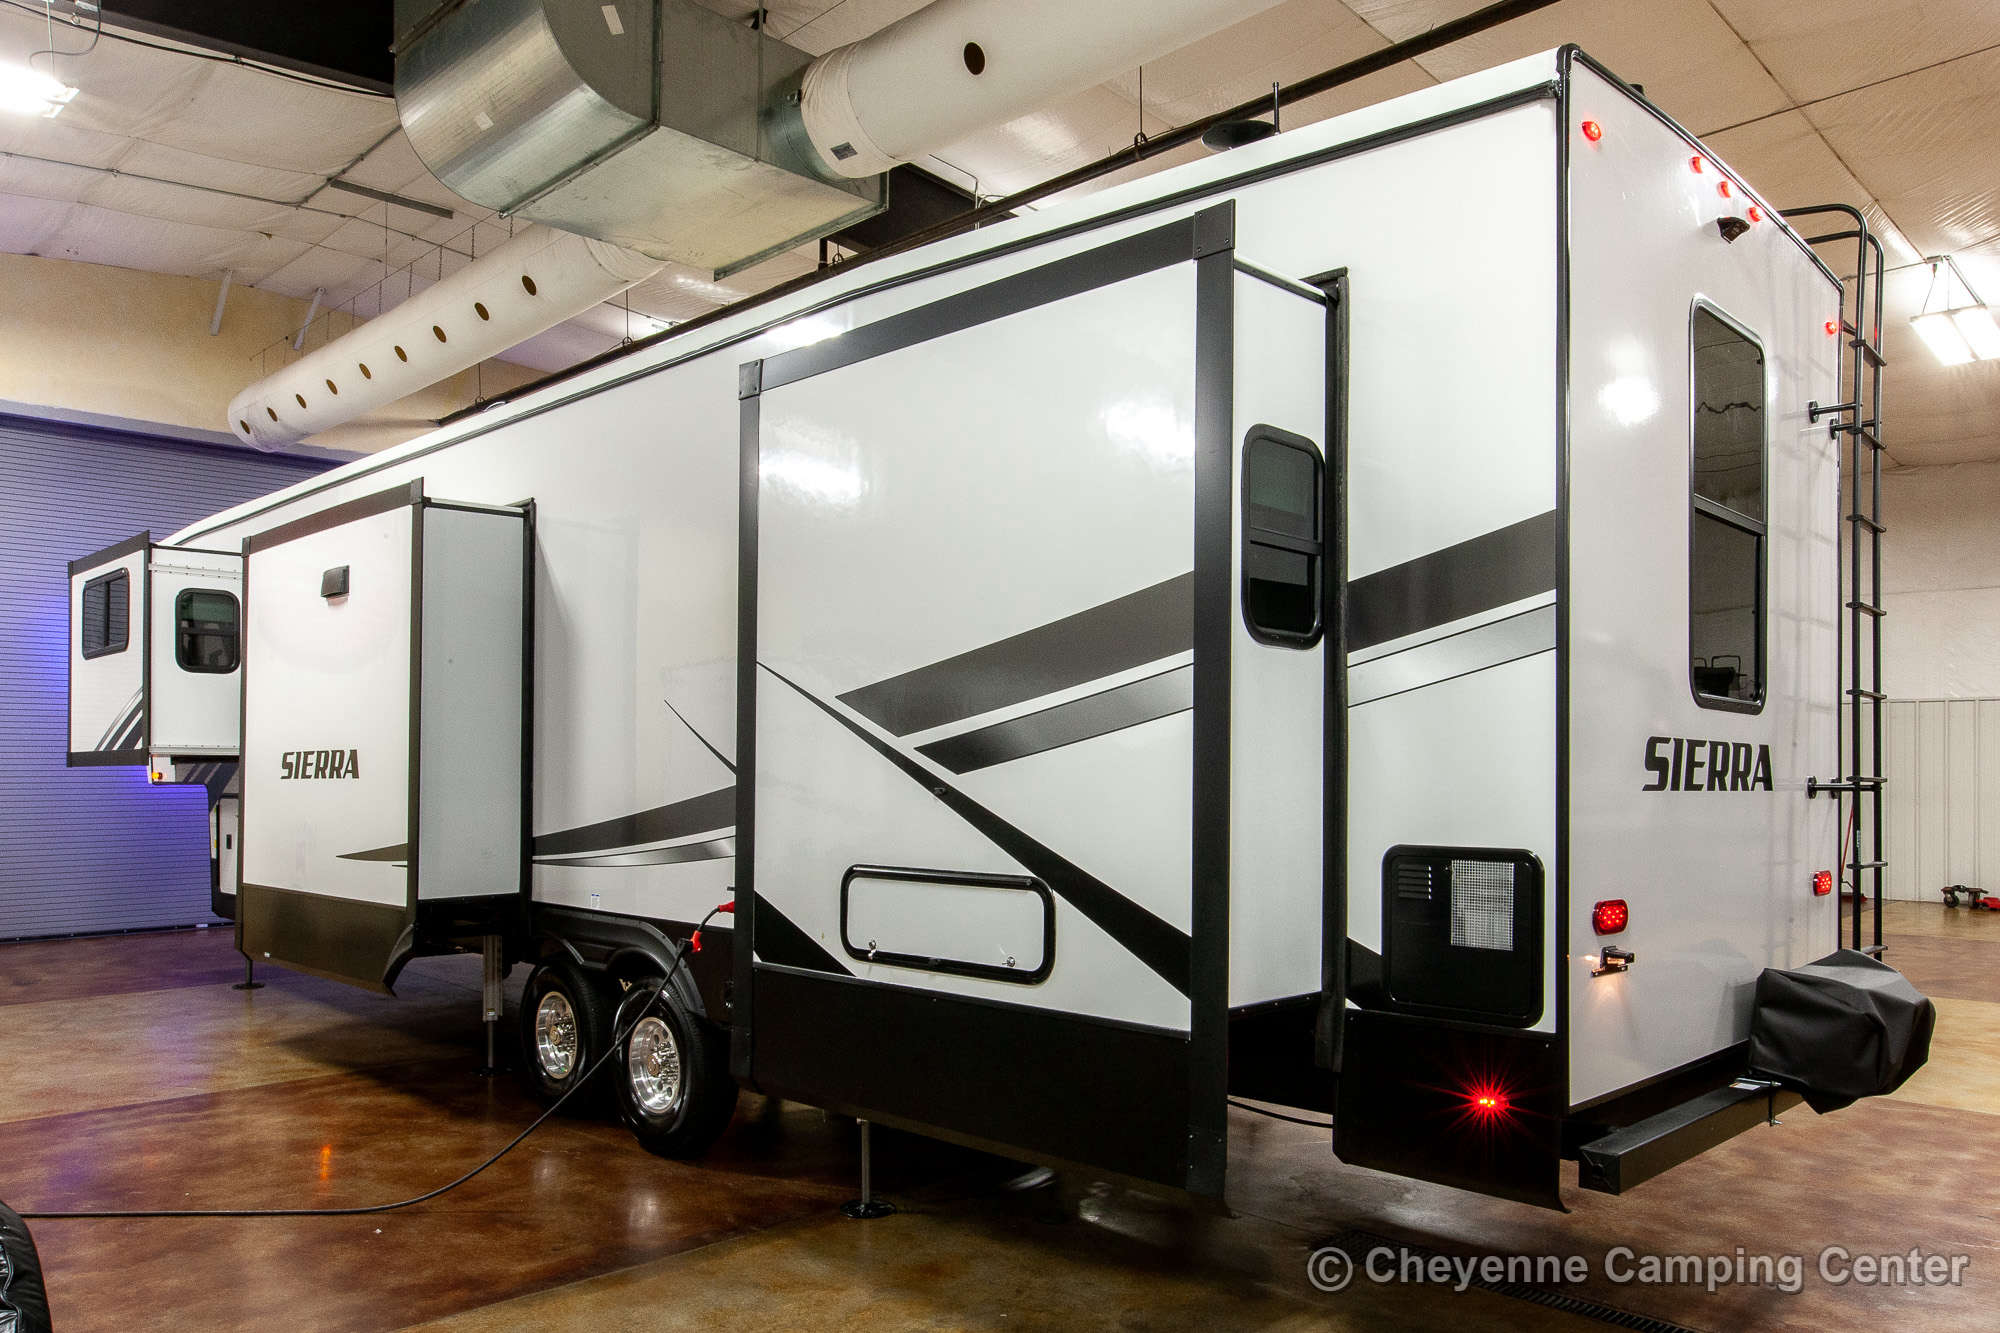 2021 Forest River Sierra 379FLOK Fifth Wheel Exterior Image